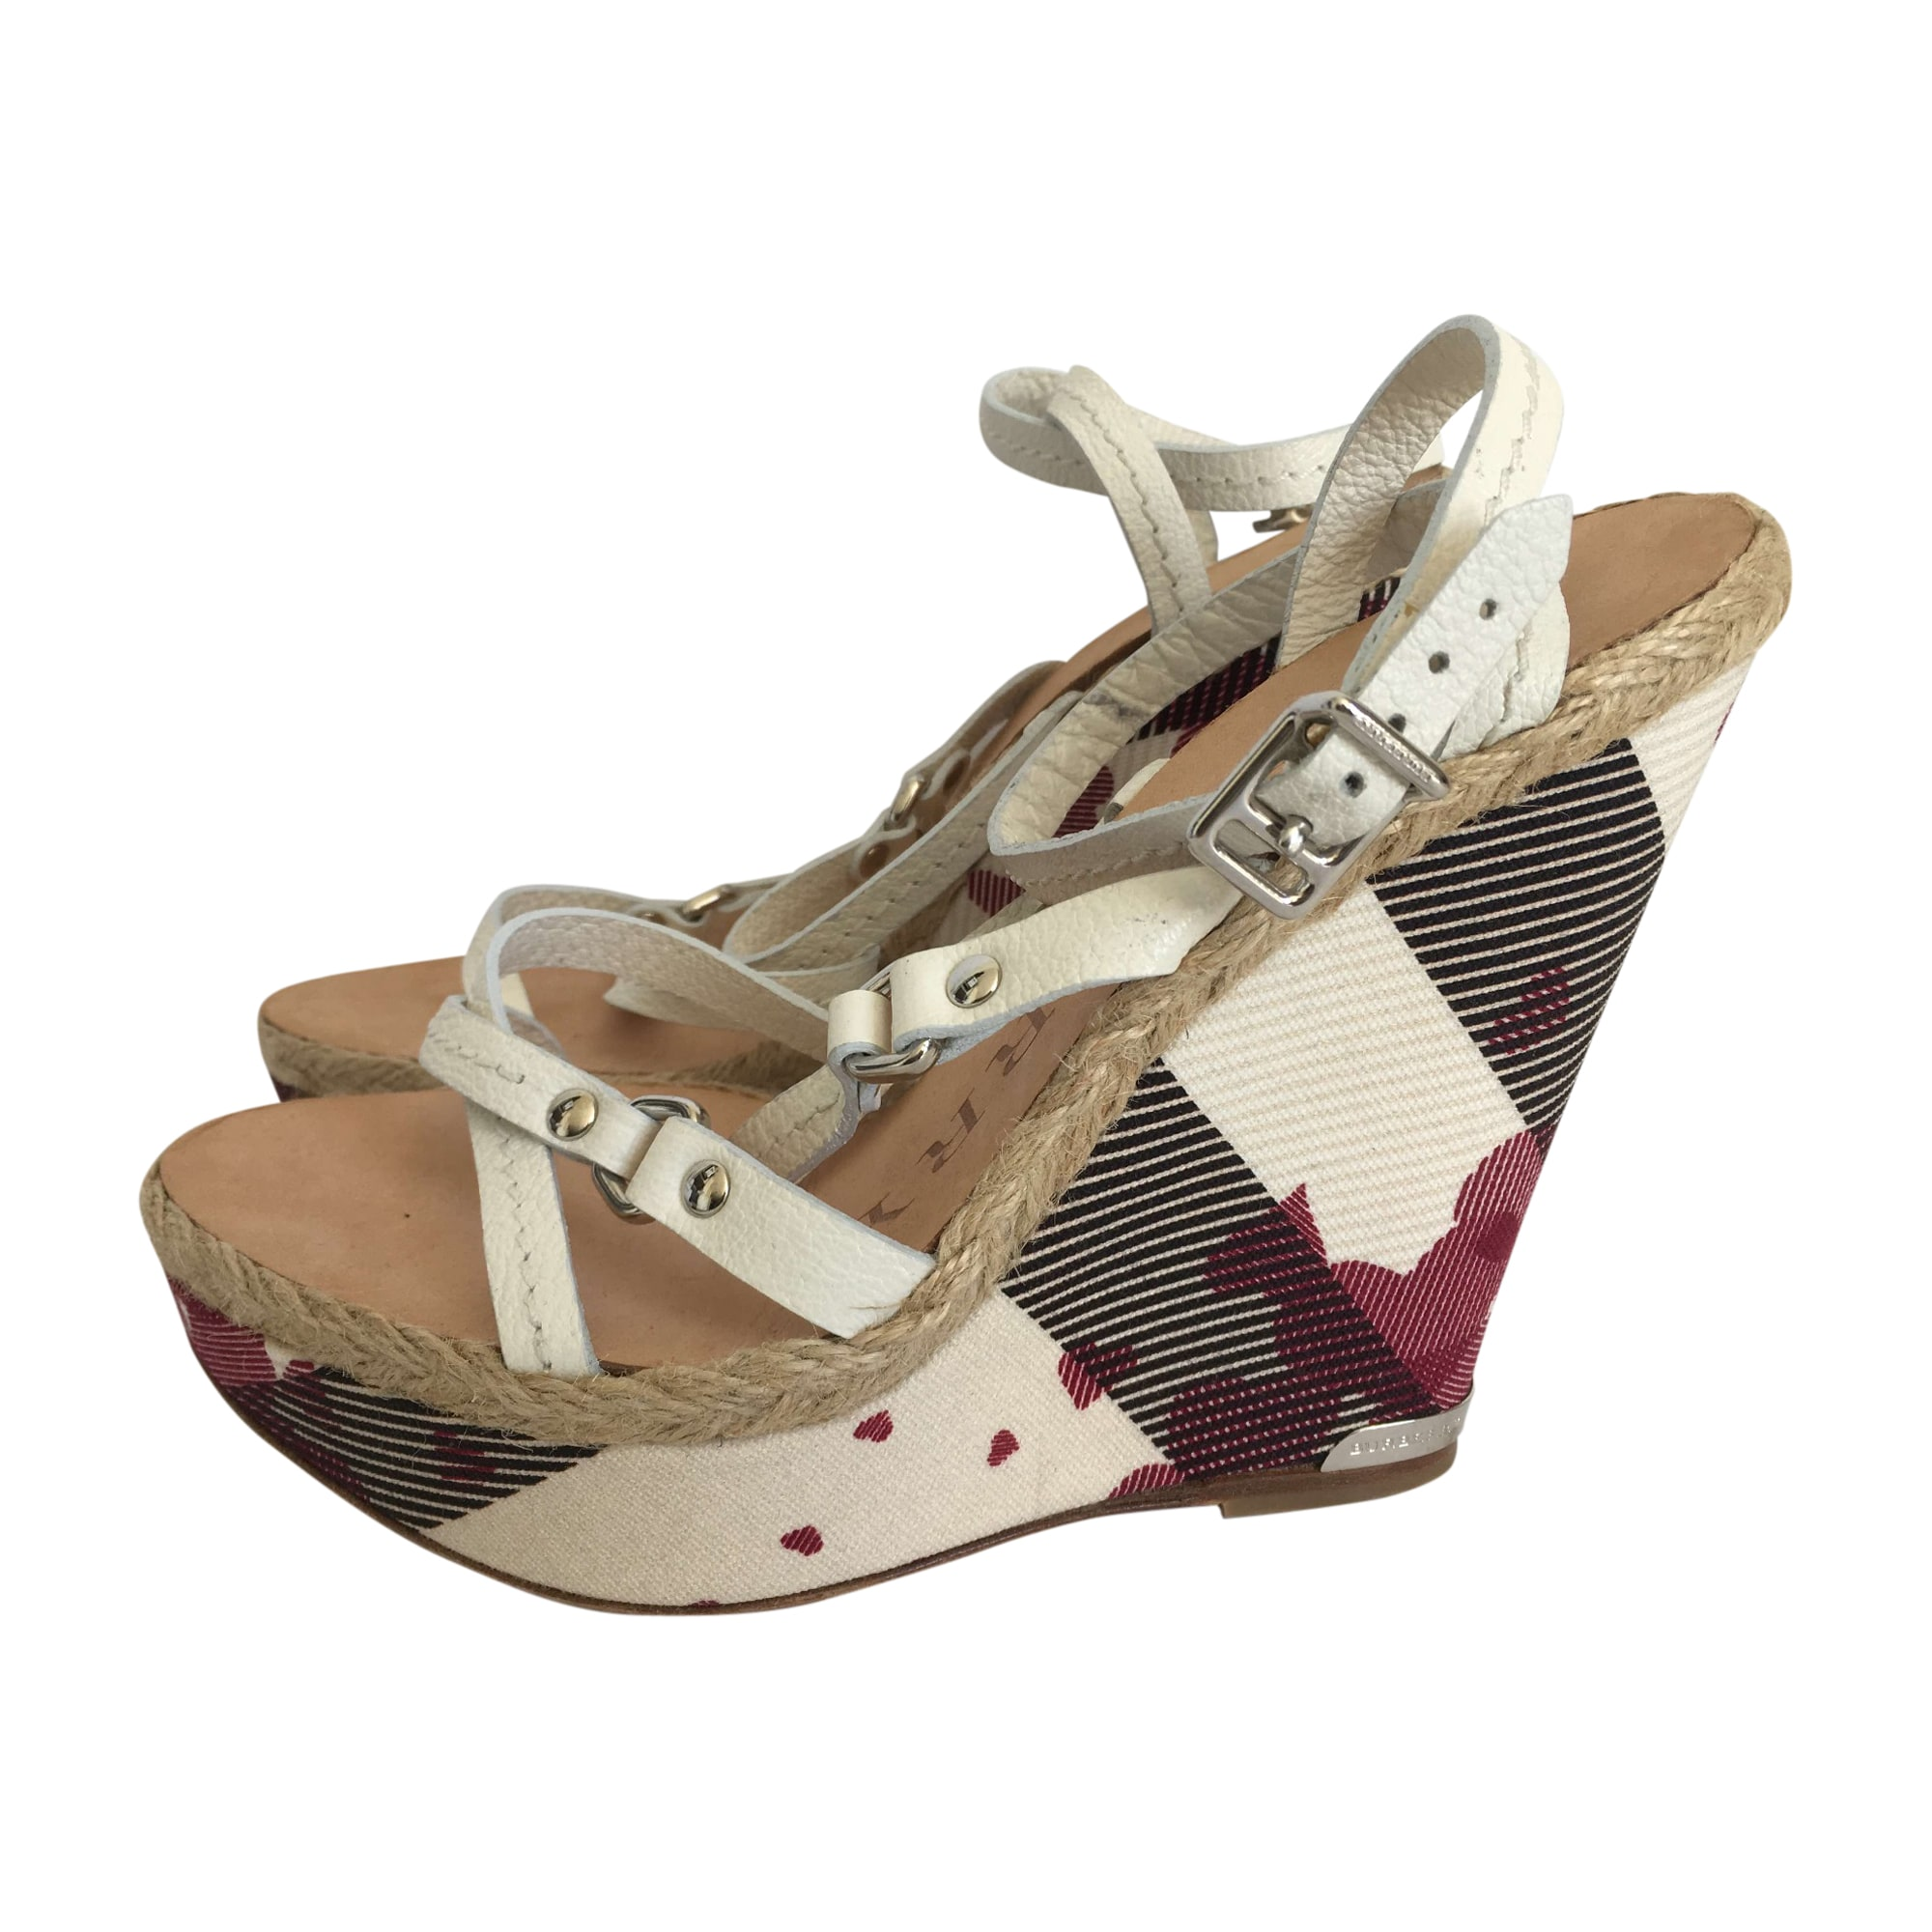 Wedge Sandals BURBERRY 37,5 white - 7931742